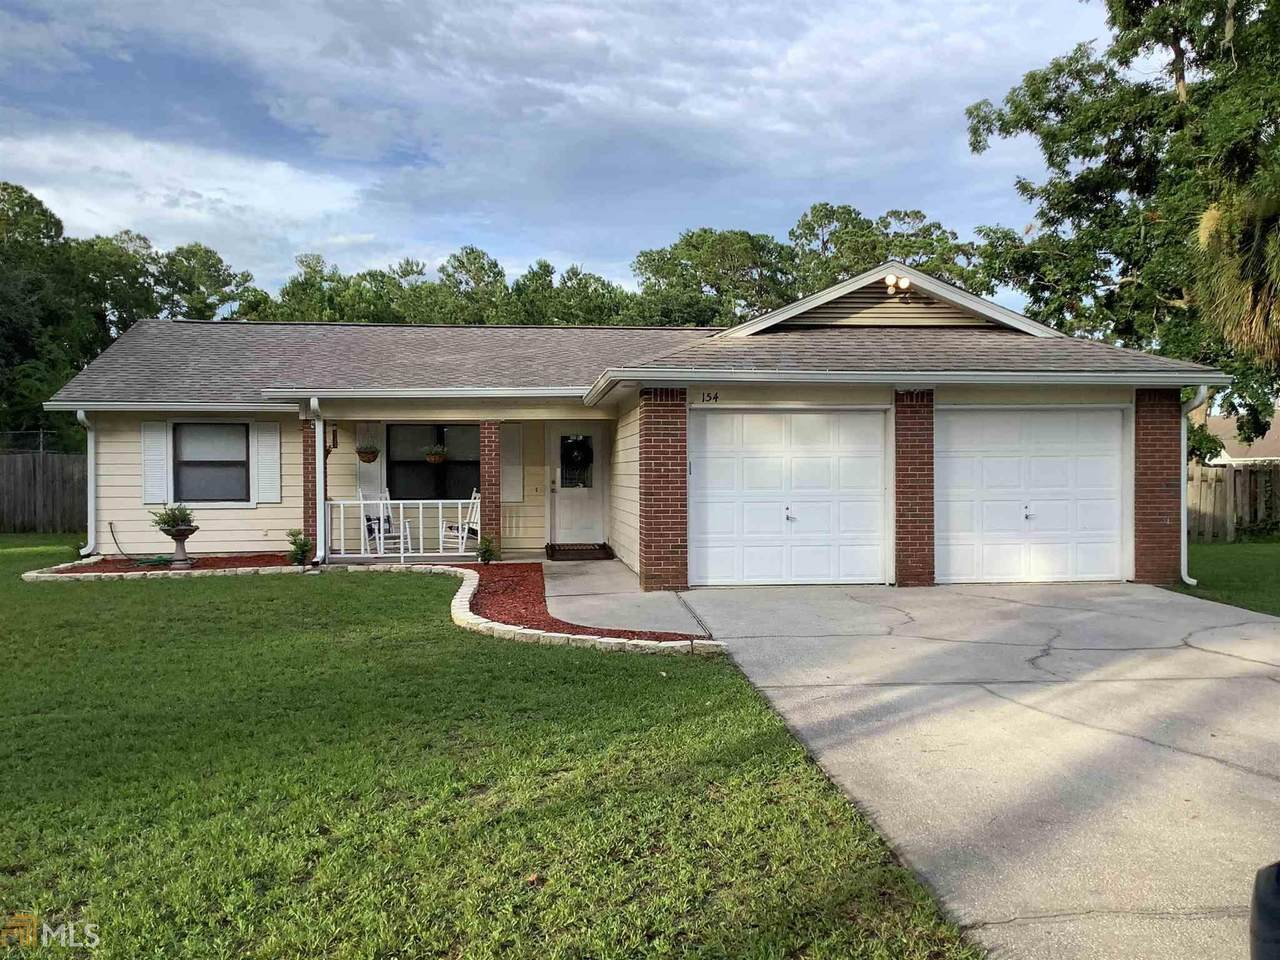 154 Woodvalley Ct - Photo 1